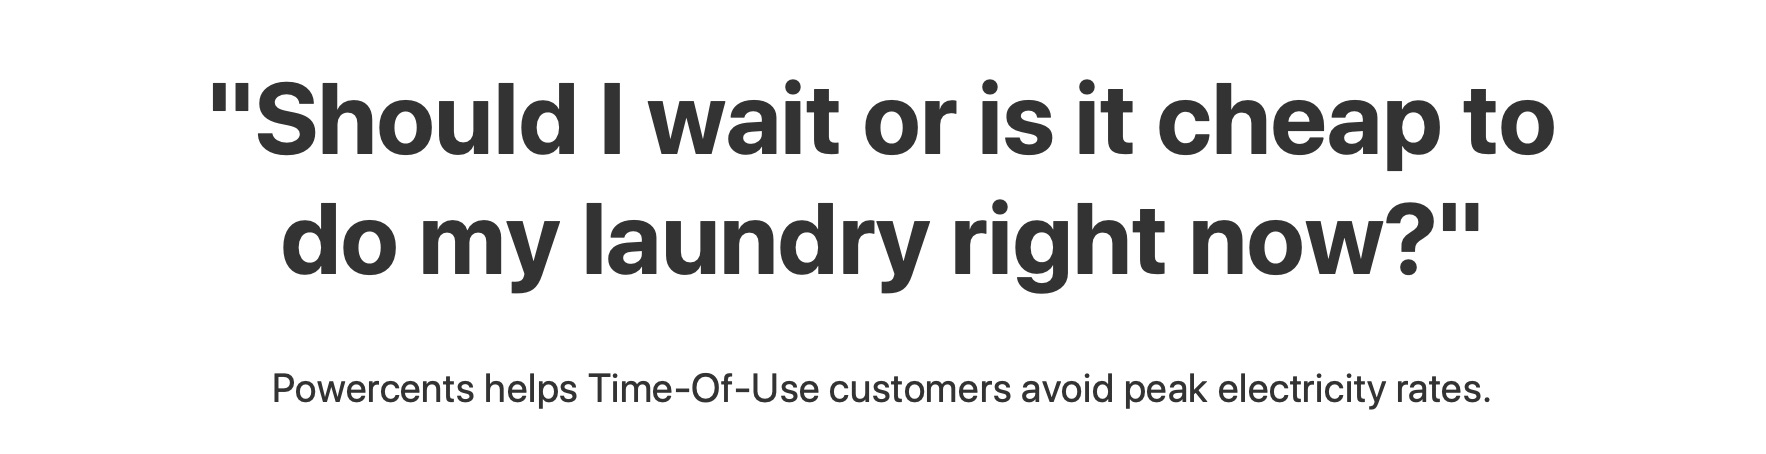 "Final Heading: ""Should I Wait or is it cheap to do my laundry right now?"""